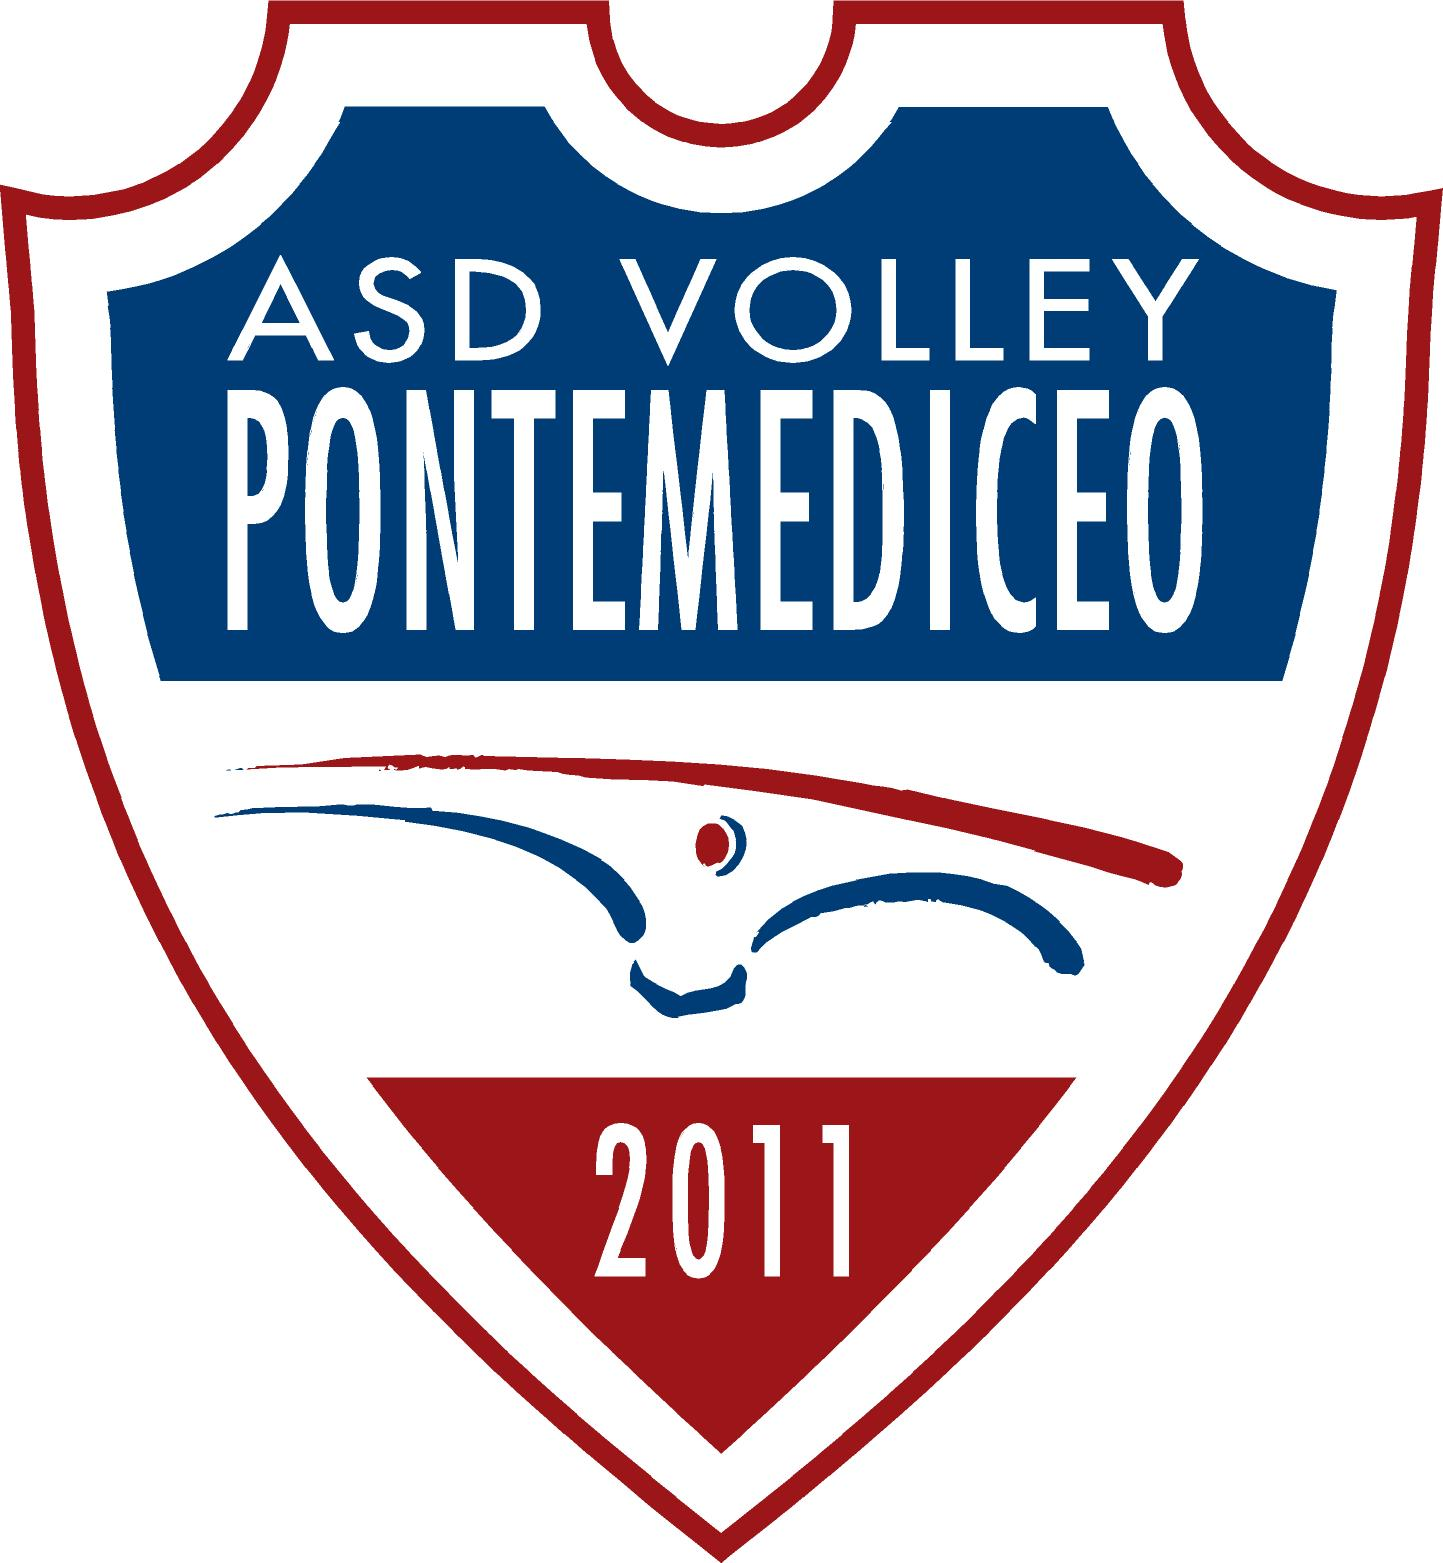 A.S.D. Volley Pontemediceo